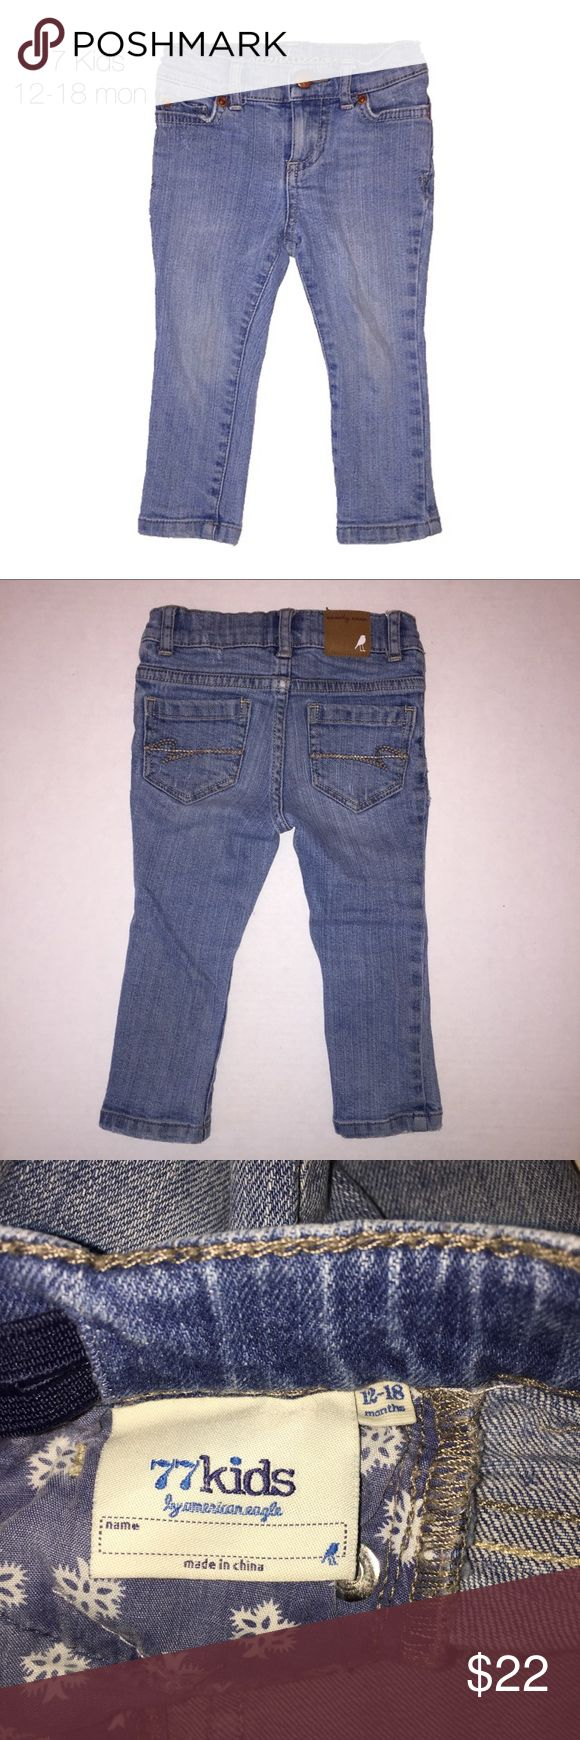 77 Kids American Eagle Skinny Jeans 12-18 mon Gently worn 77 Kids American Eagle Medium Wash Skinny Jeans 12-18 mon adjustable waist. These were our absolute favorite and held up amazing! Super comfy and adorable 77kids Bottoms Jeans